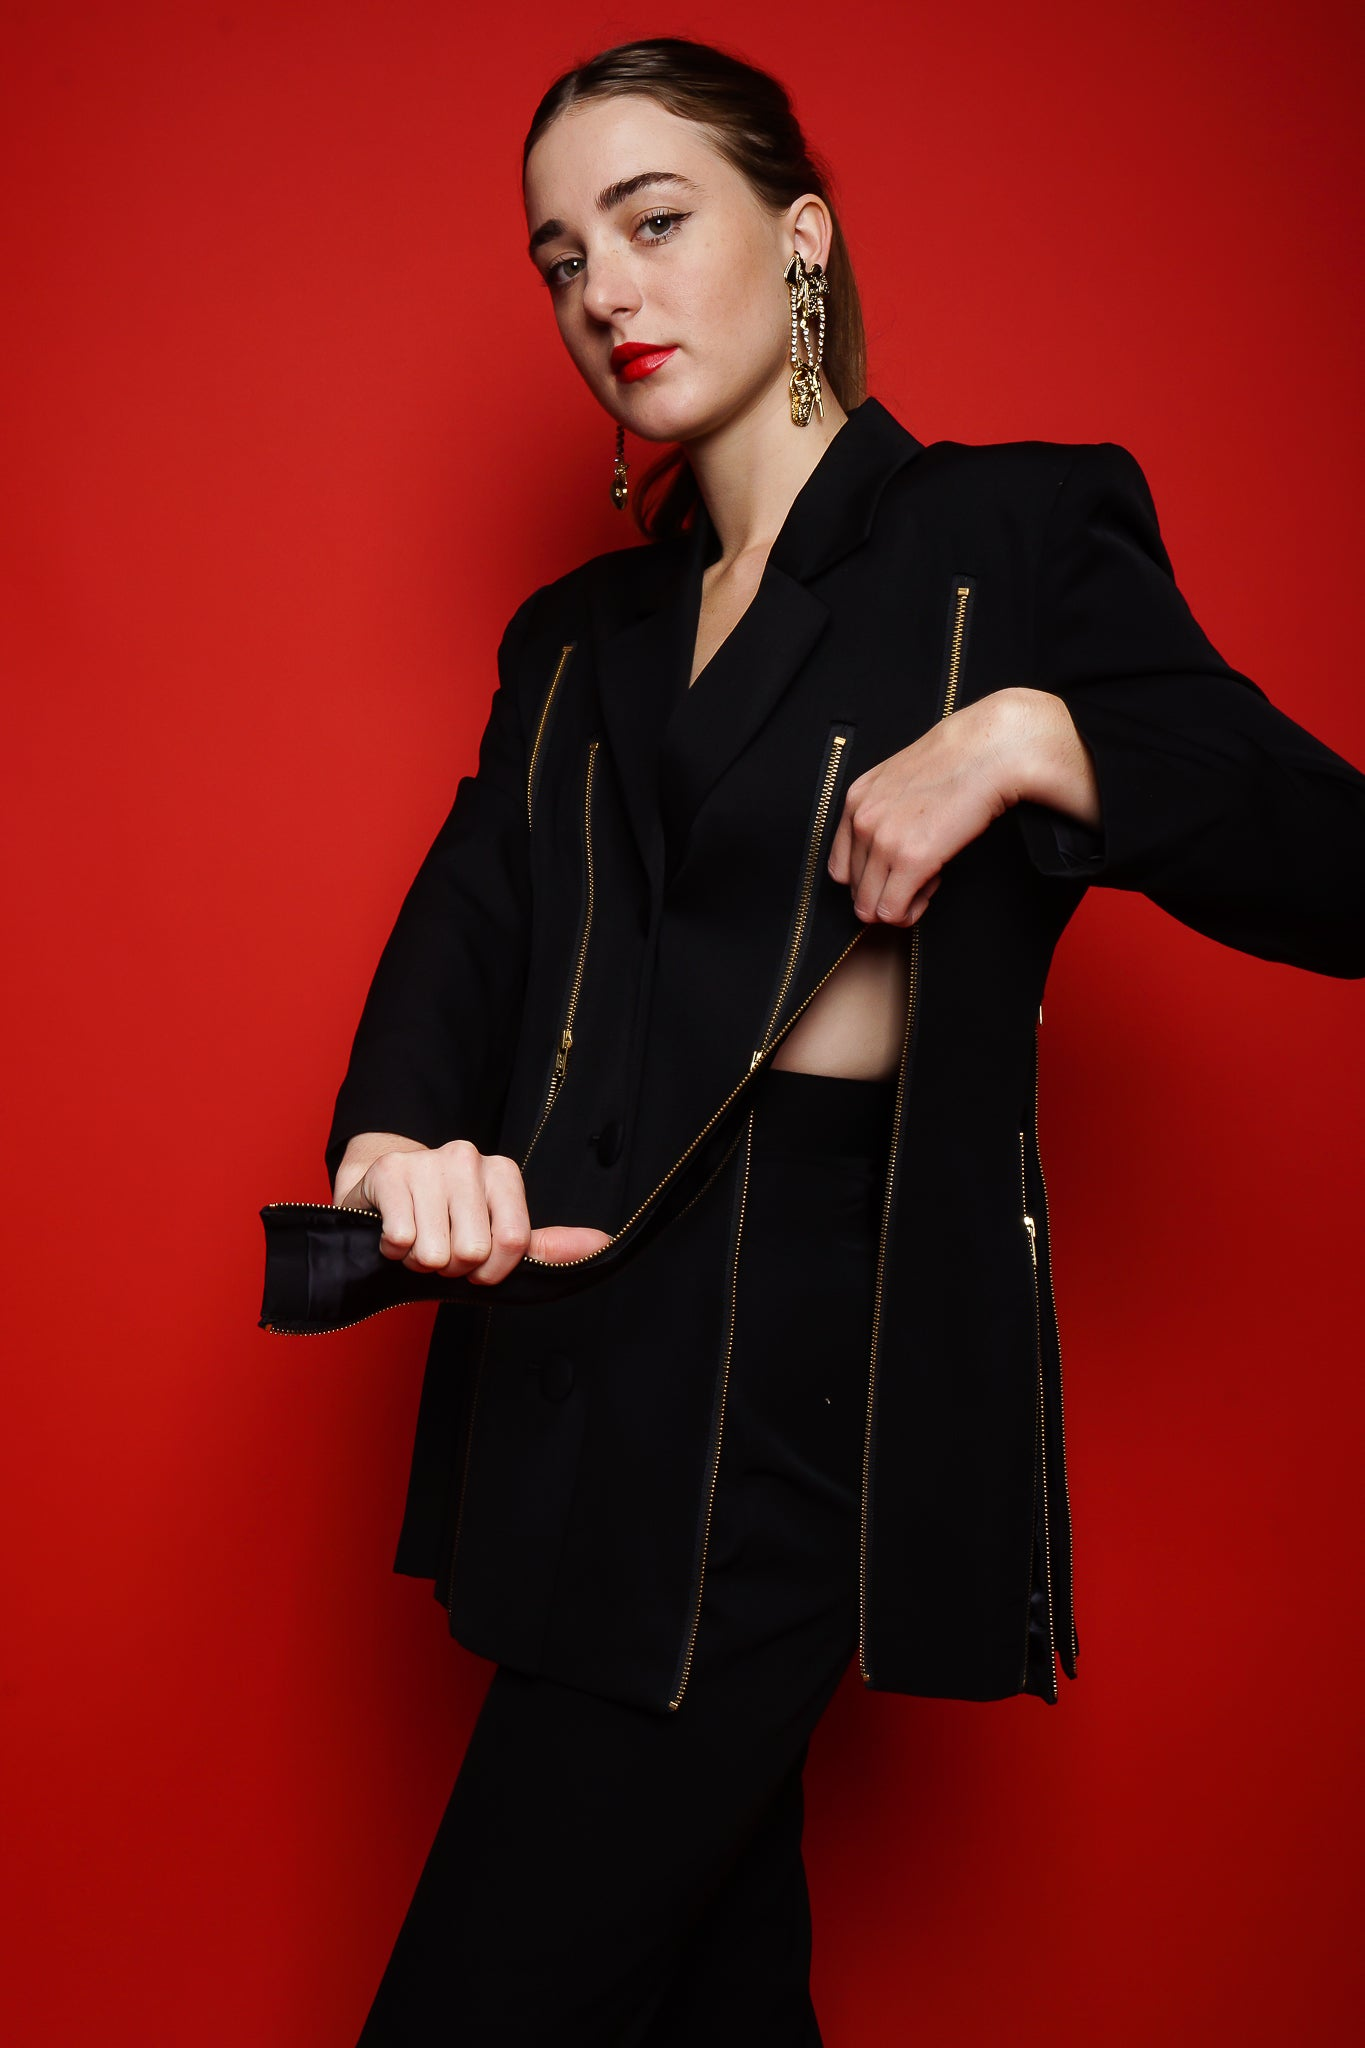 Girl in M.Yoko Japan Zippered Carwash Slit Jacket on red background at Recess Los Angeles